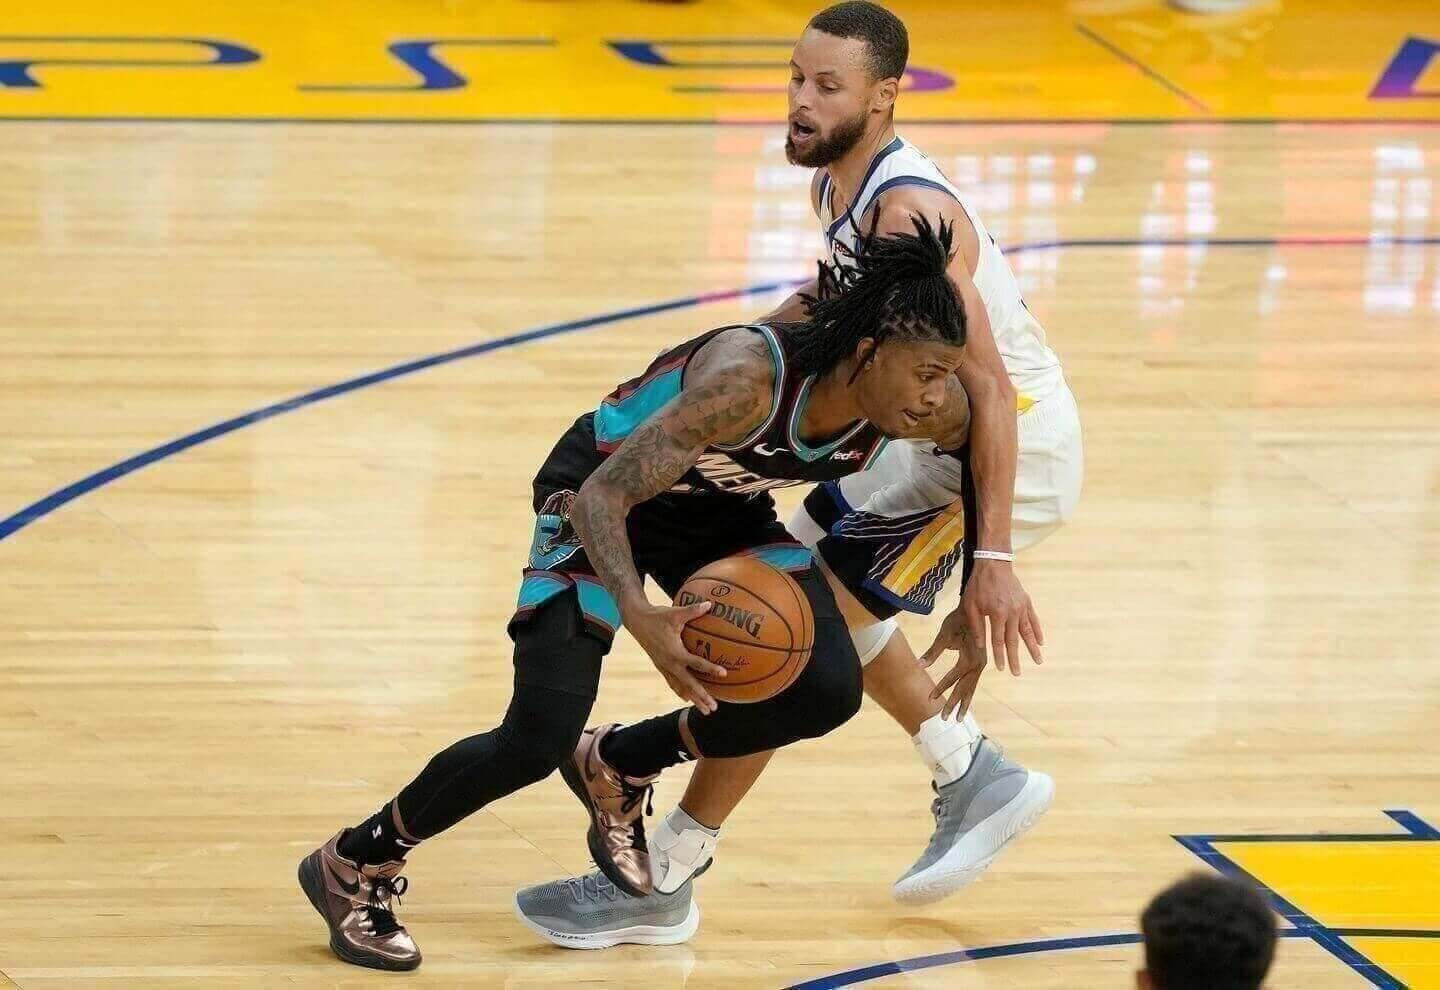 Warriors-Grizzlies NBA Play-In game: Live updates, score, will it be Steph Curry or Ja Morant moving on?